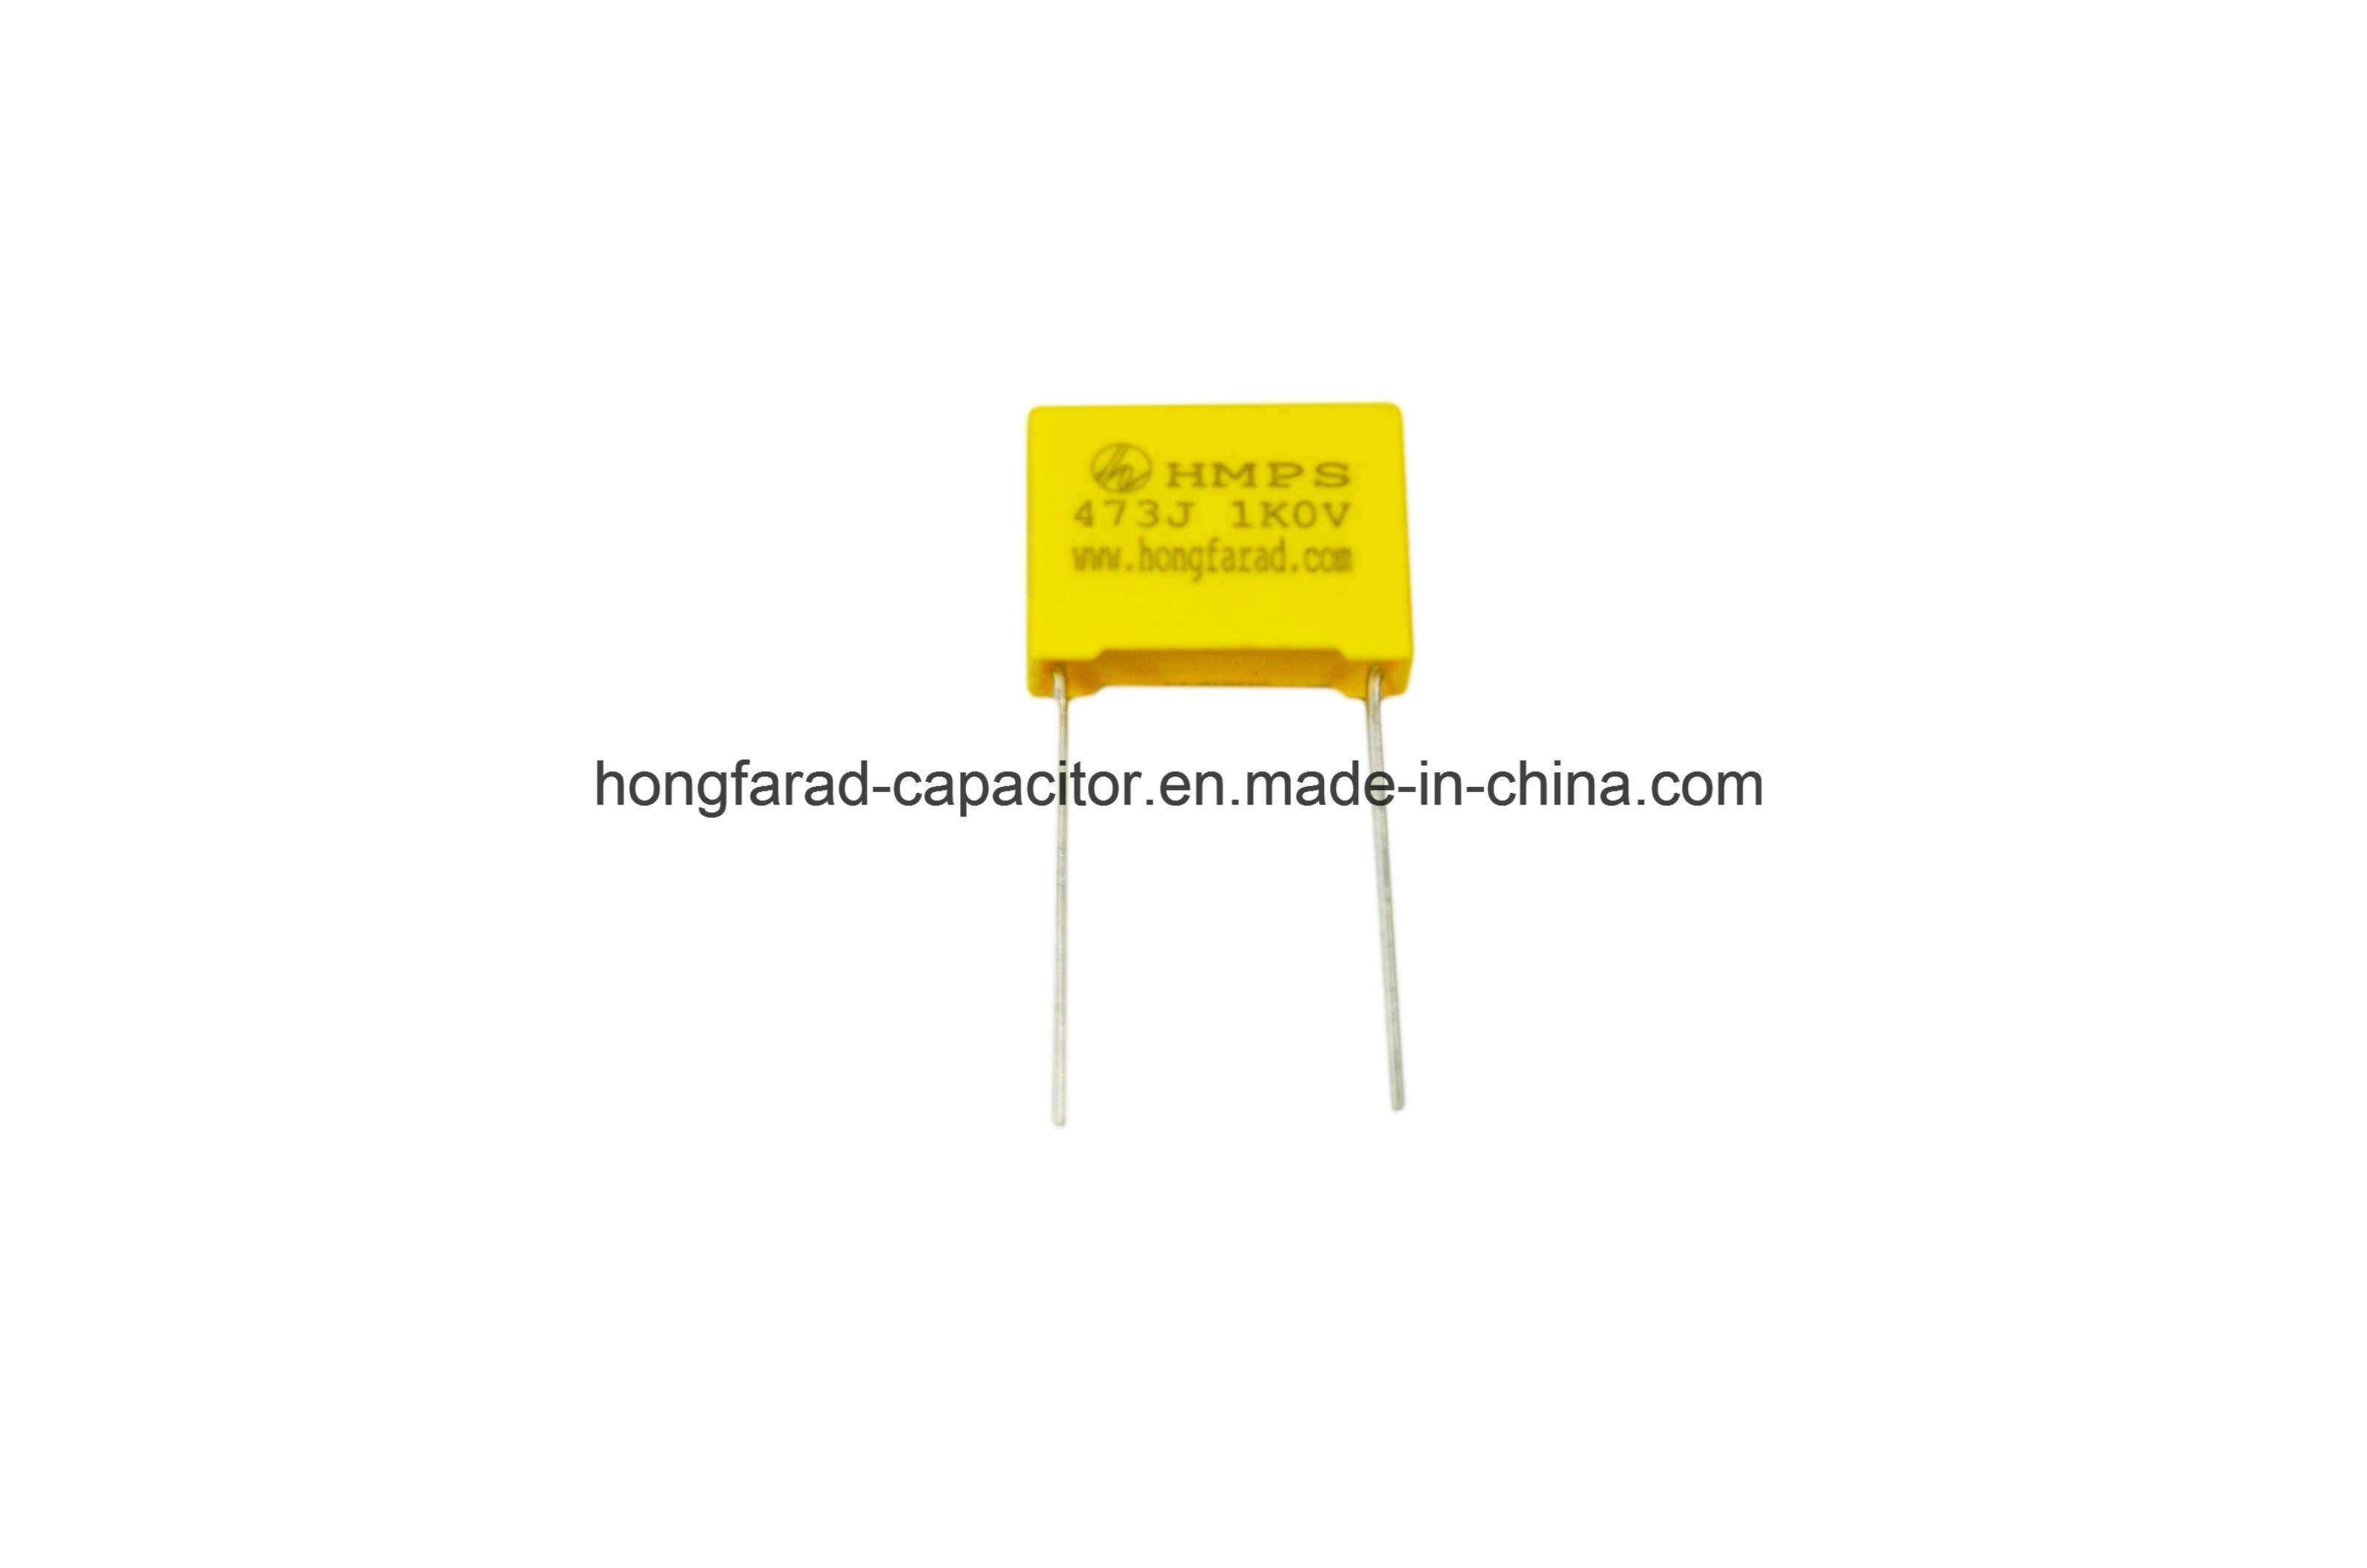 Metallized Polypropylene Film Capacitor with High Voltage MKP81 Mps